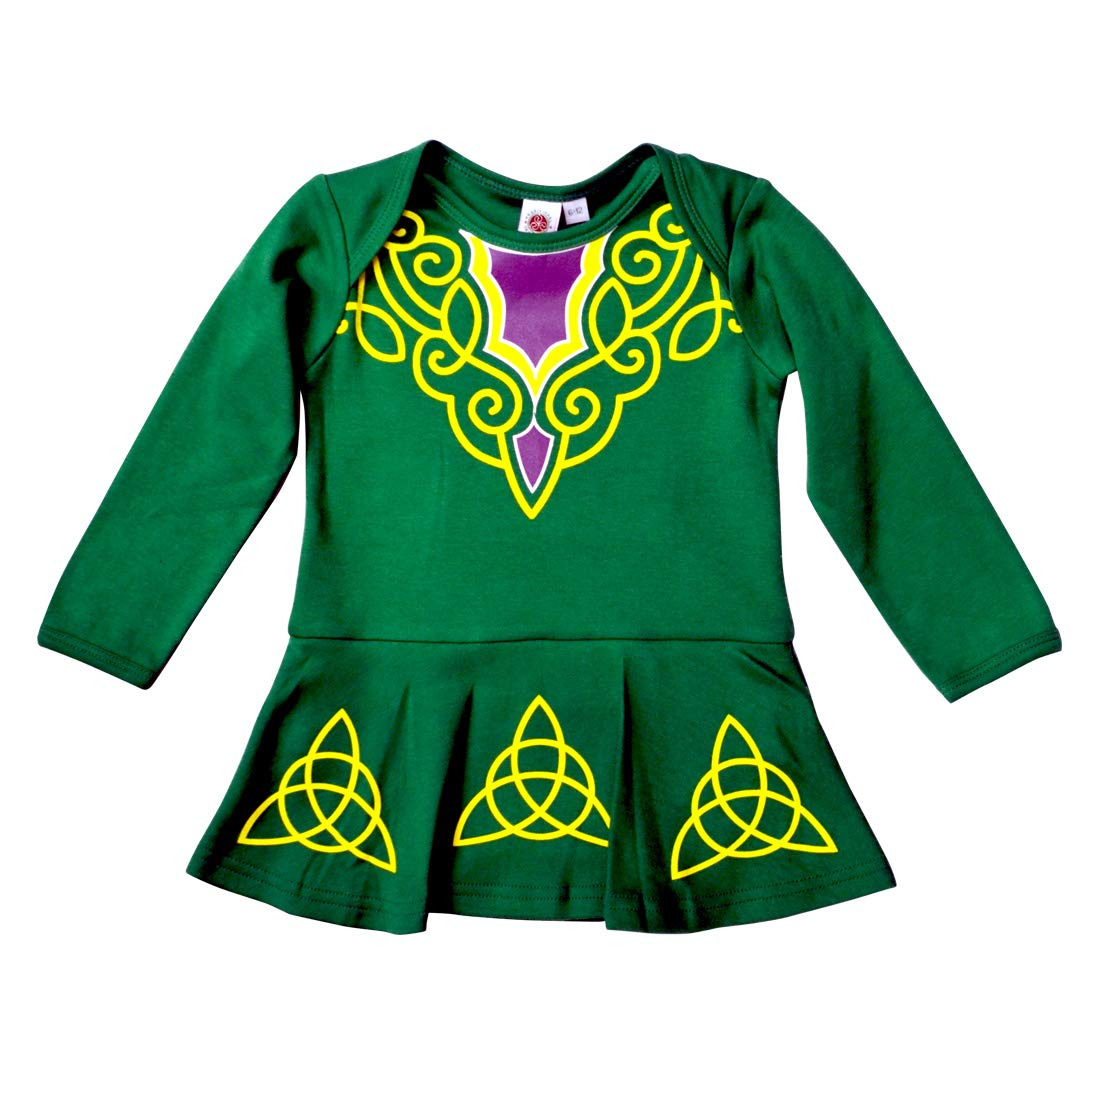 Green Babies Vest Designed As Irish Dancing Dress With Celtic Design Carrolls Irish Gifts